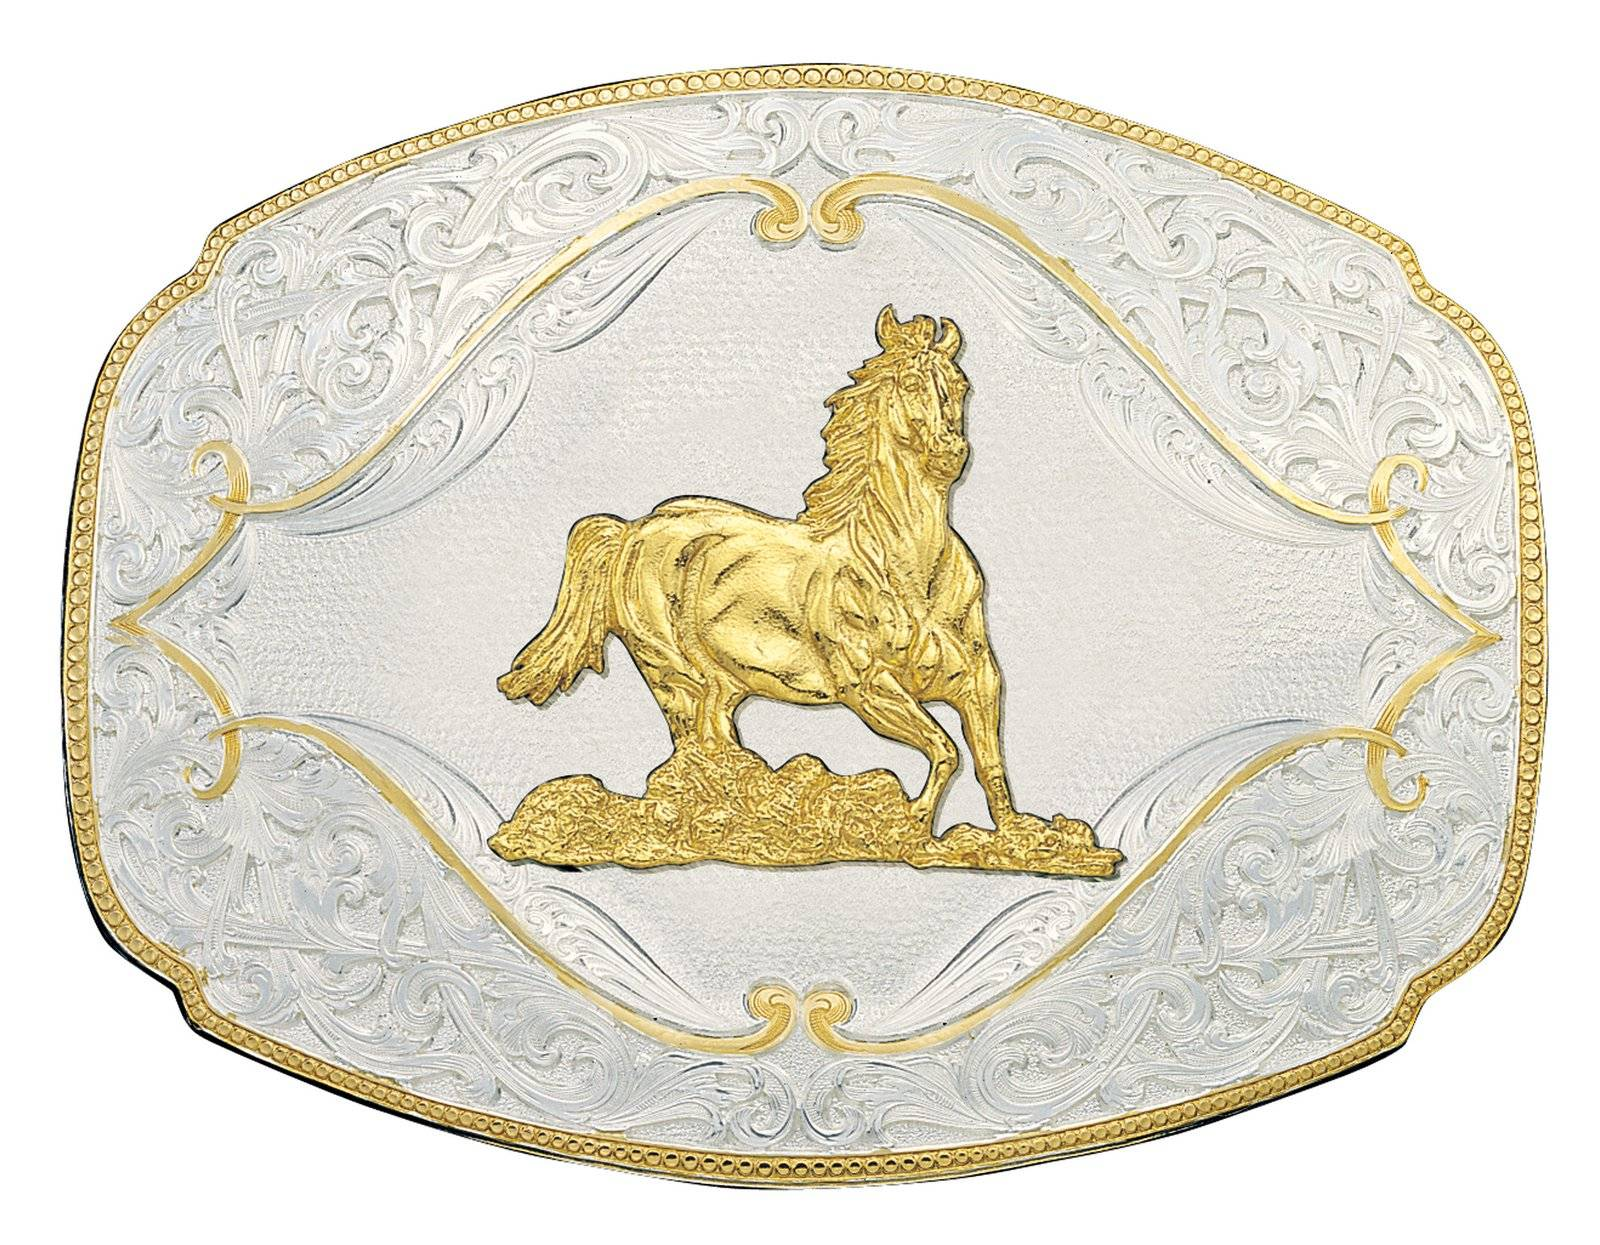 Montana Silversmiths Gold Flourish Western Belt Buckle with Galloping Horse